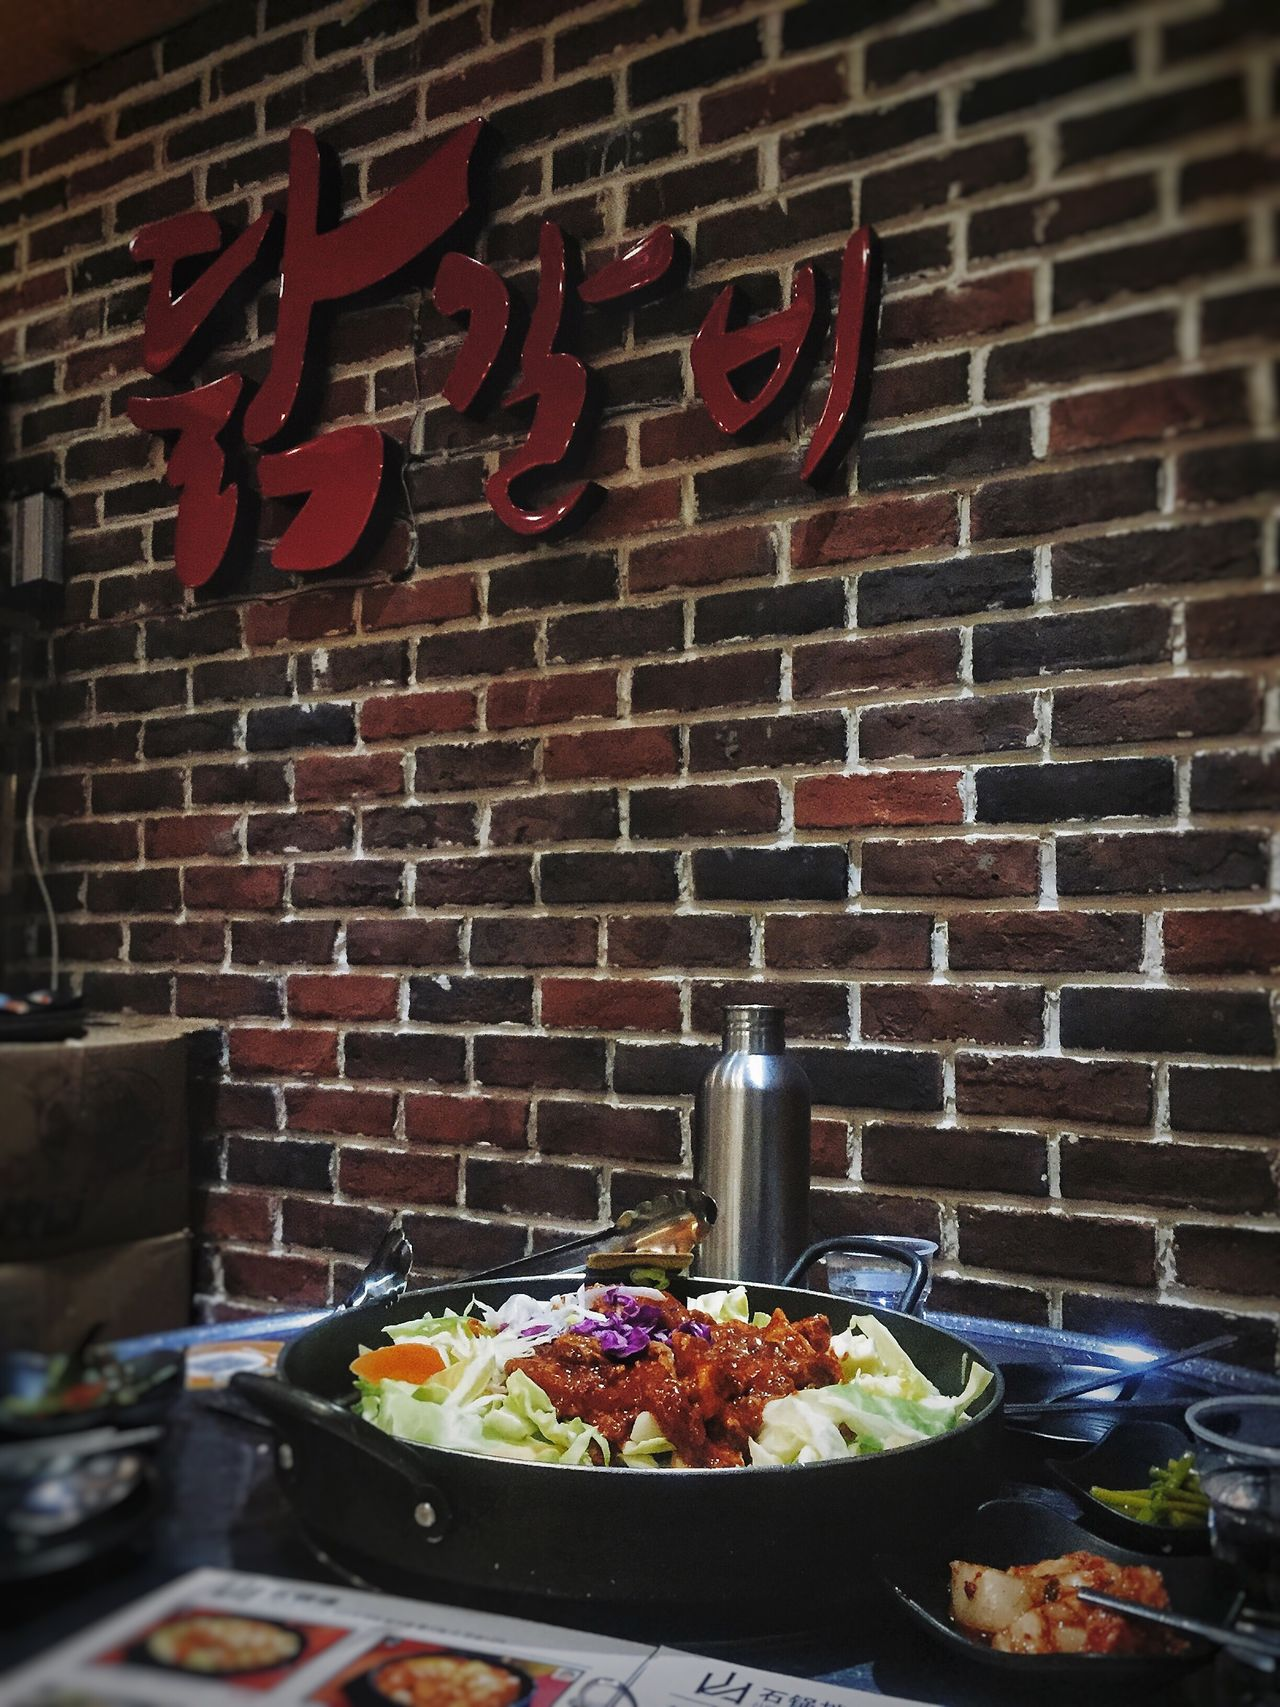 Restaurant Brick Wall Food Table Korean Food Ready-to-eat Supper Dinner Dinner Time Meal Night